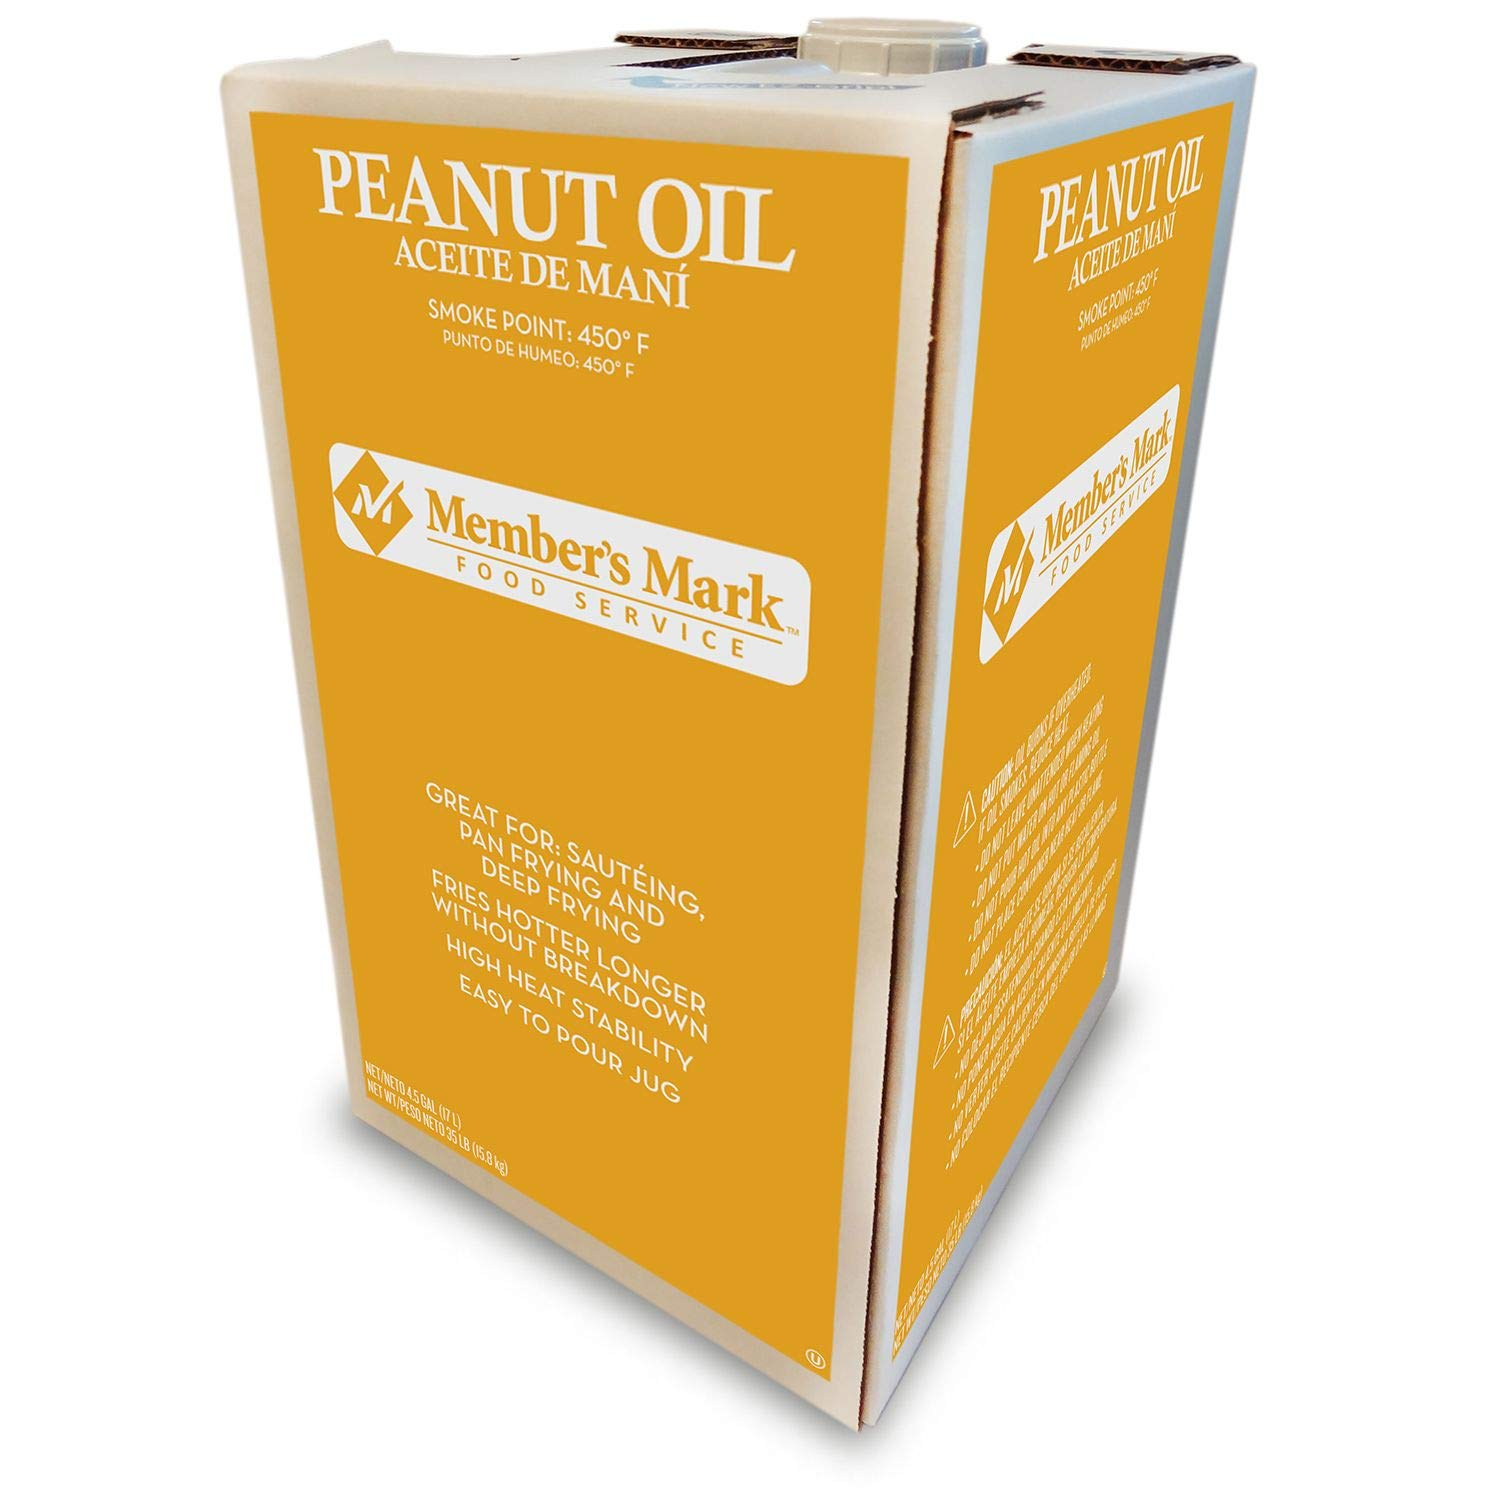 Member's Mark Peanut Oil 4.5 gals. A1